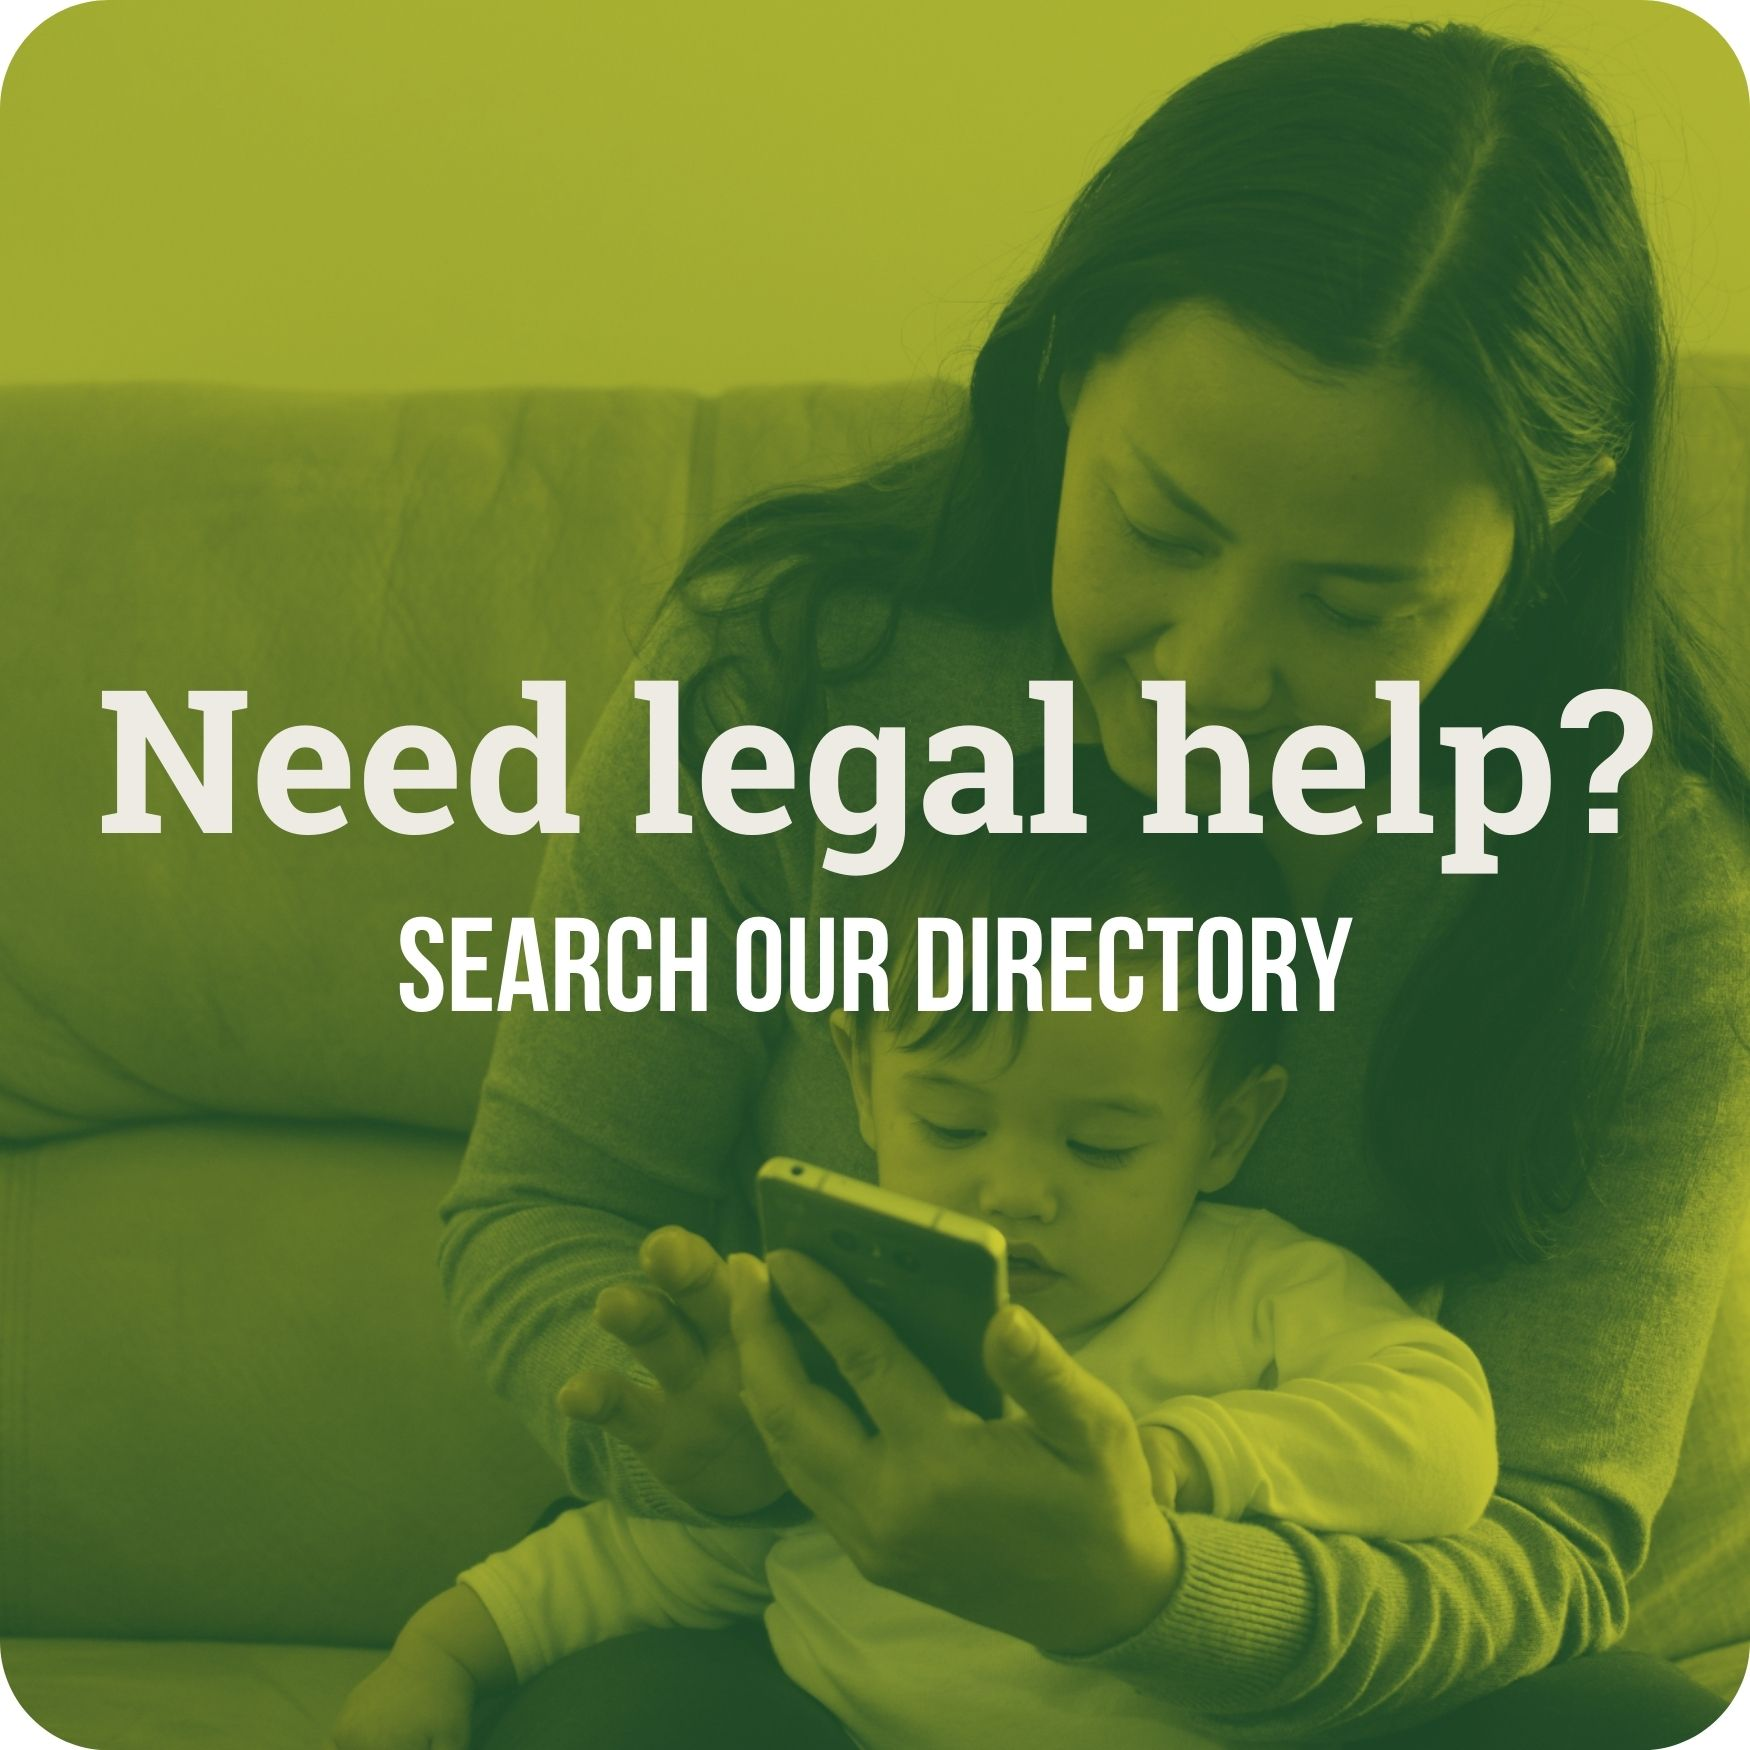 Need legal help? Search our directory